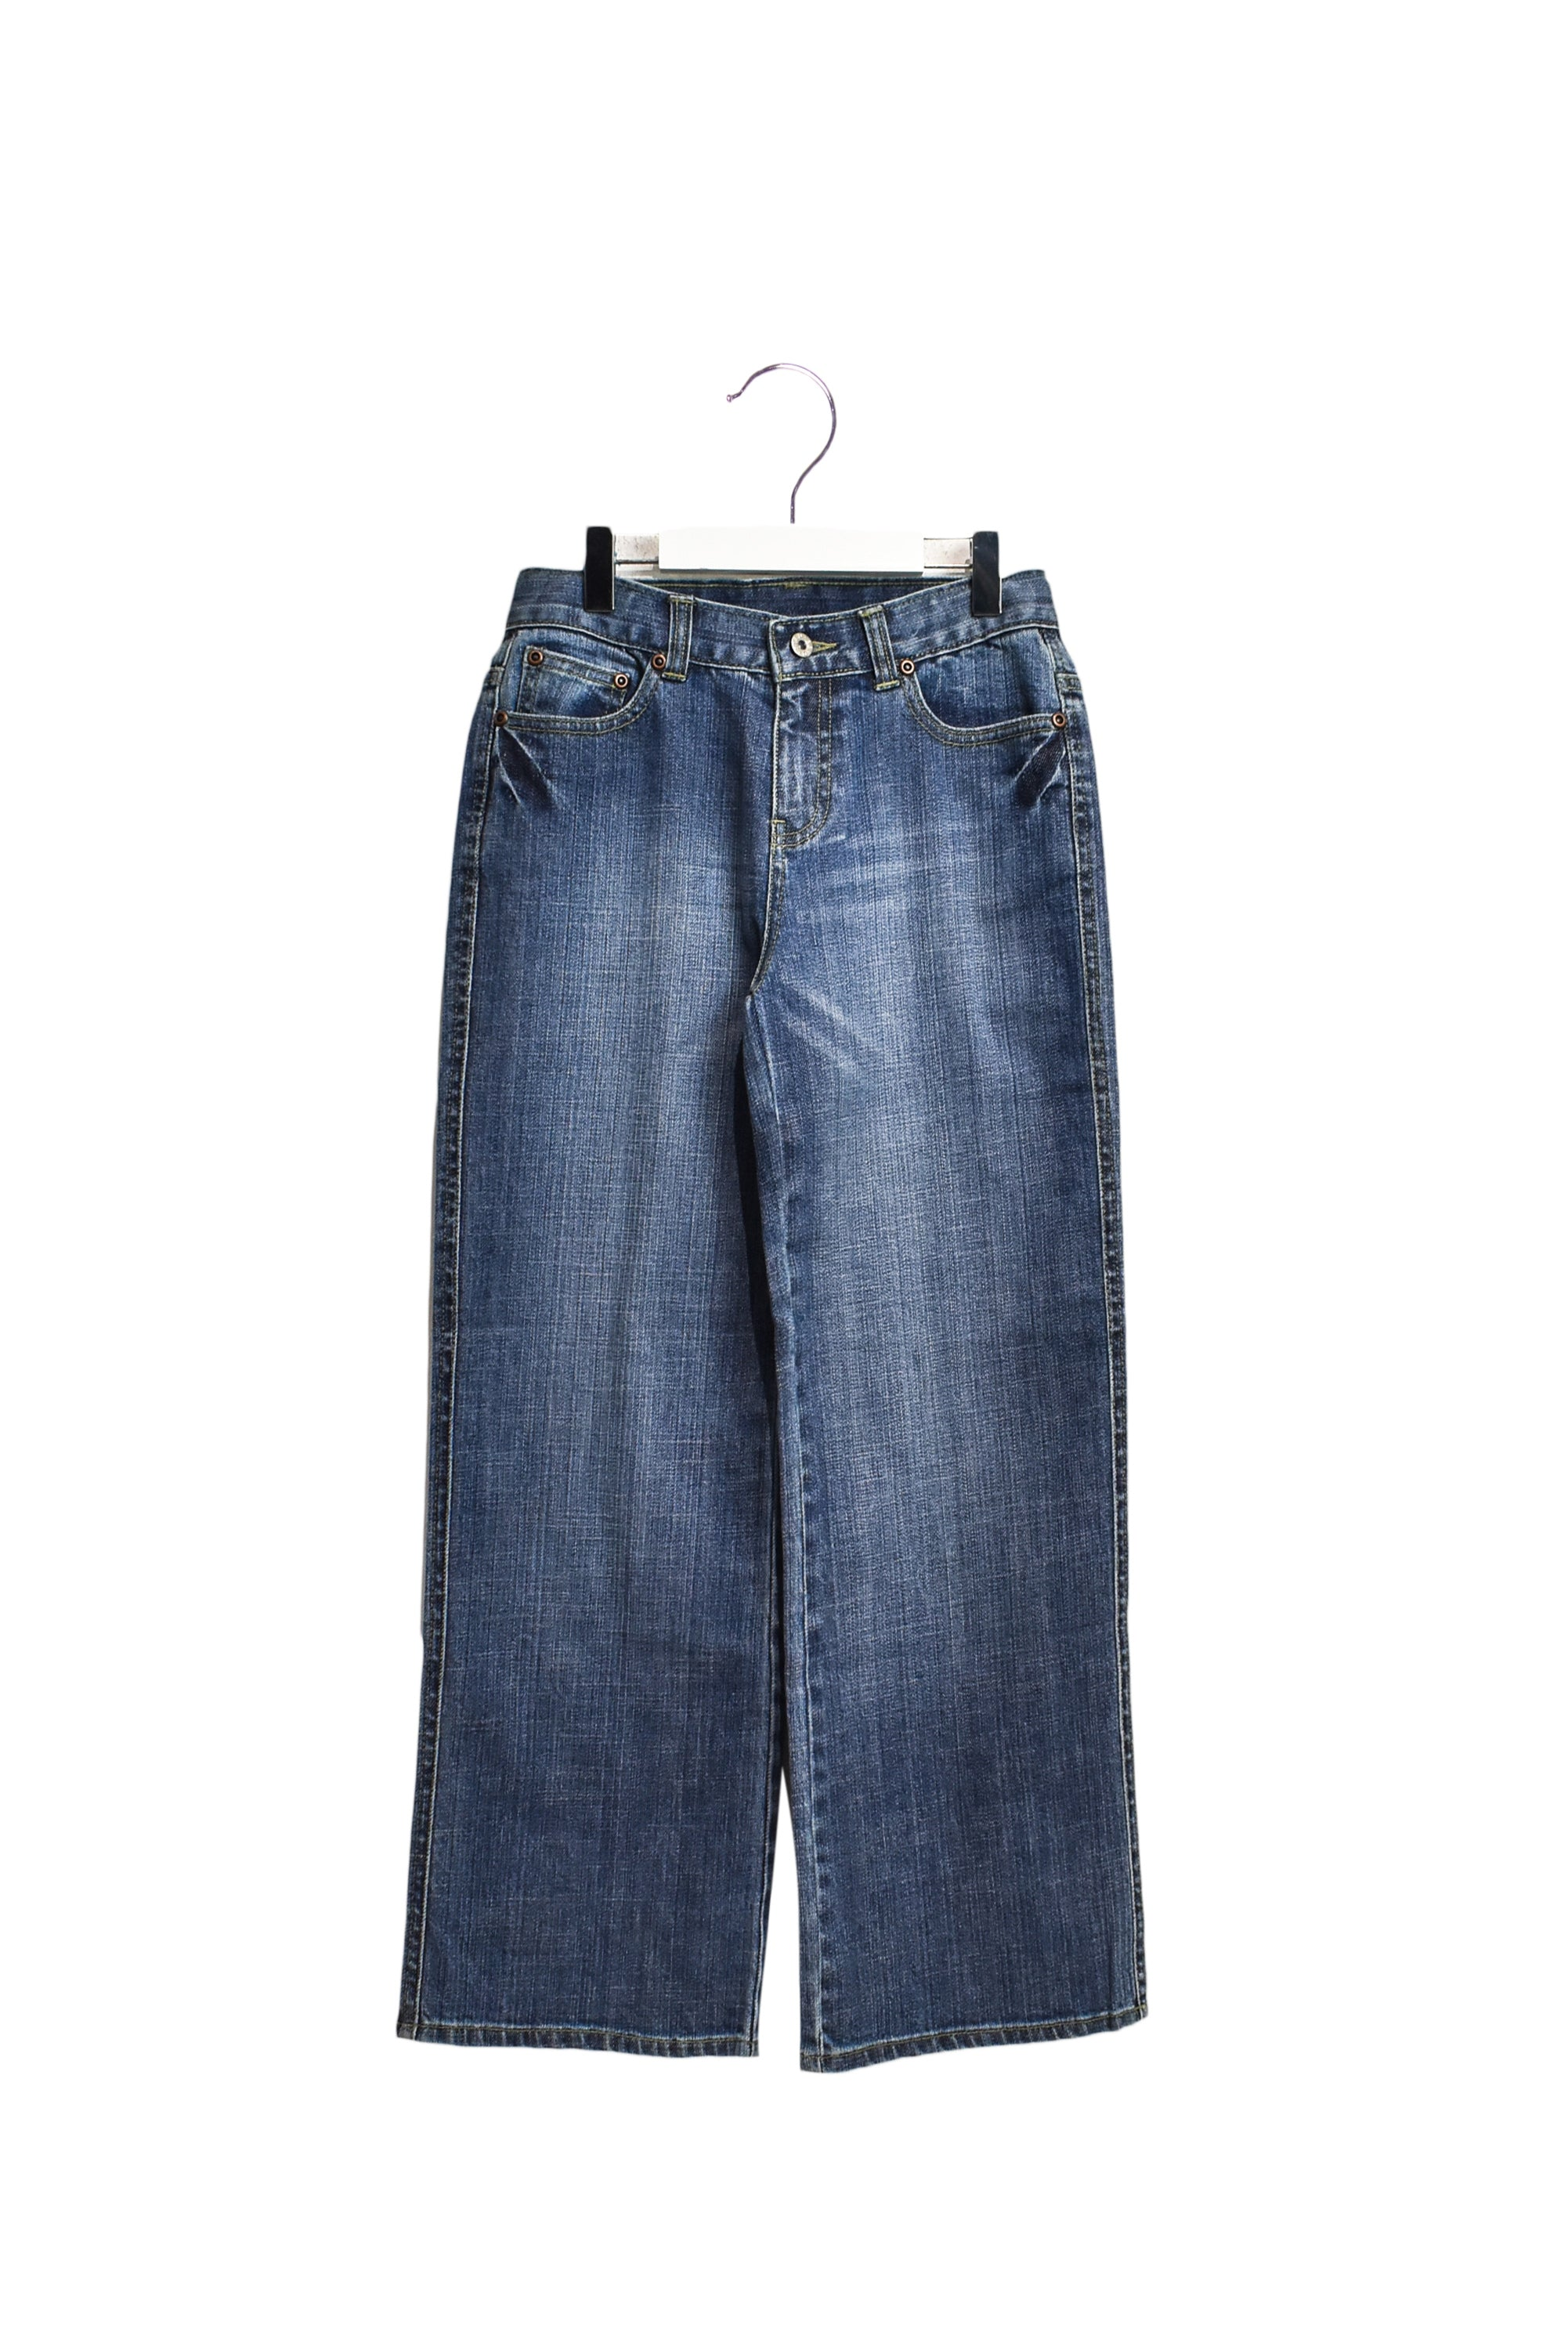 10023432 Seed Kids~Jeans 9-10 at Retykle